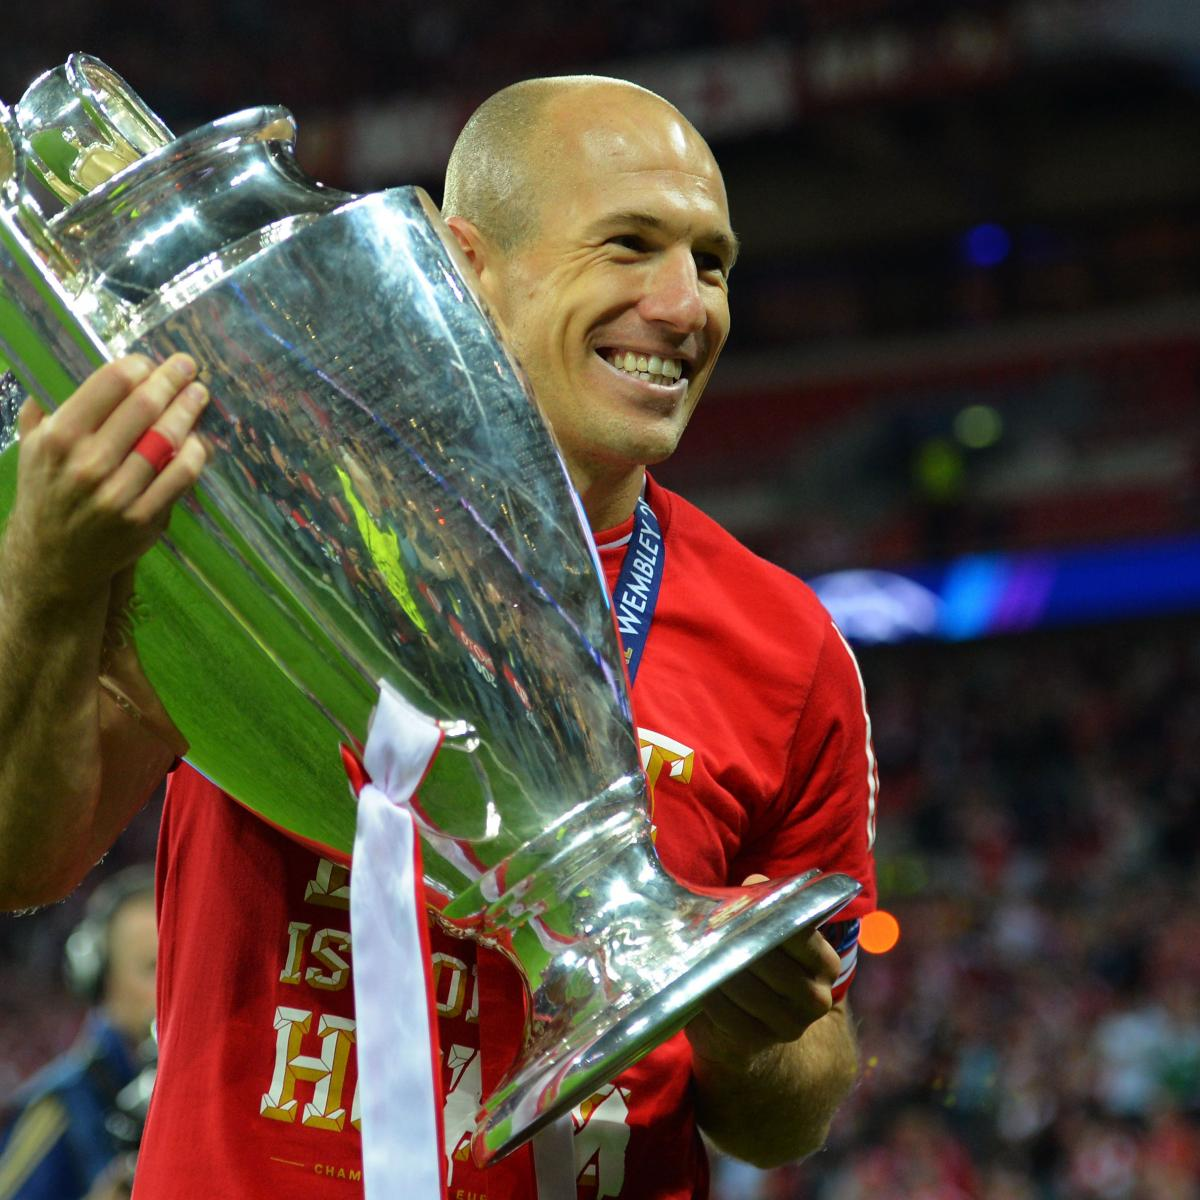 Champions League Final 2012: Champions League Final: Arjen Robben Exorcises Demons With